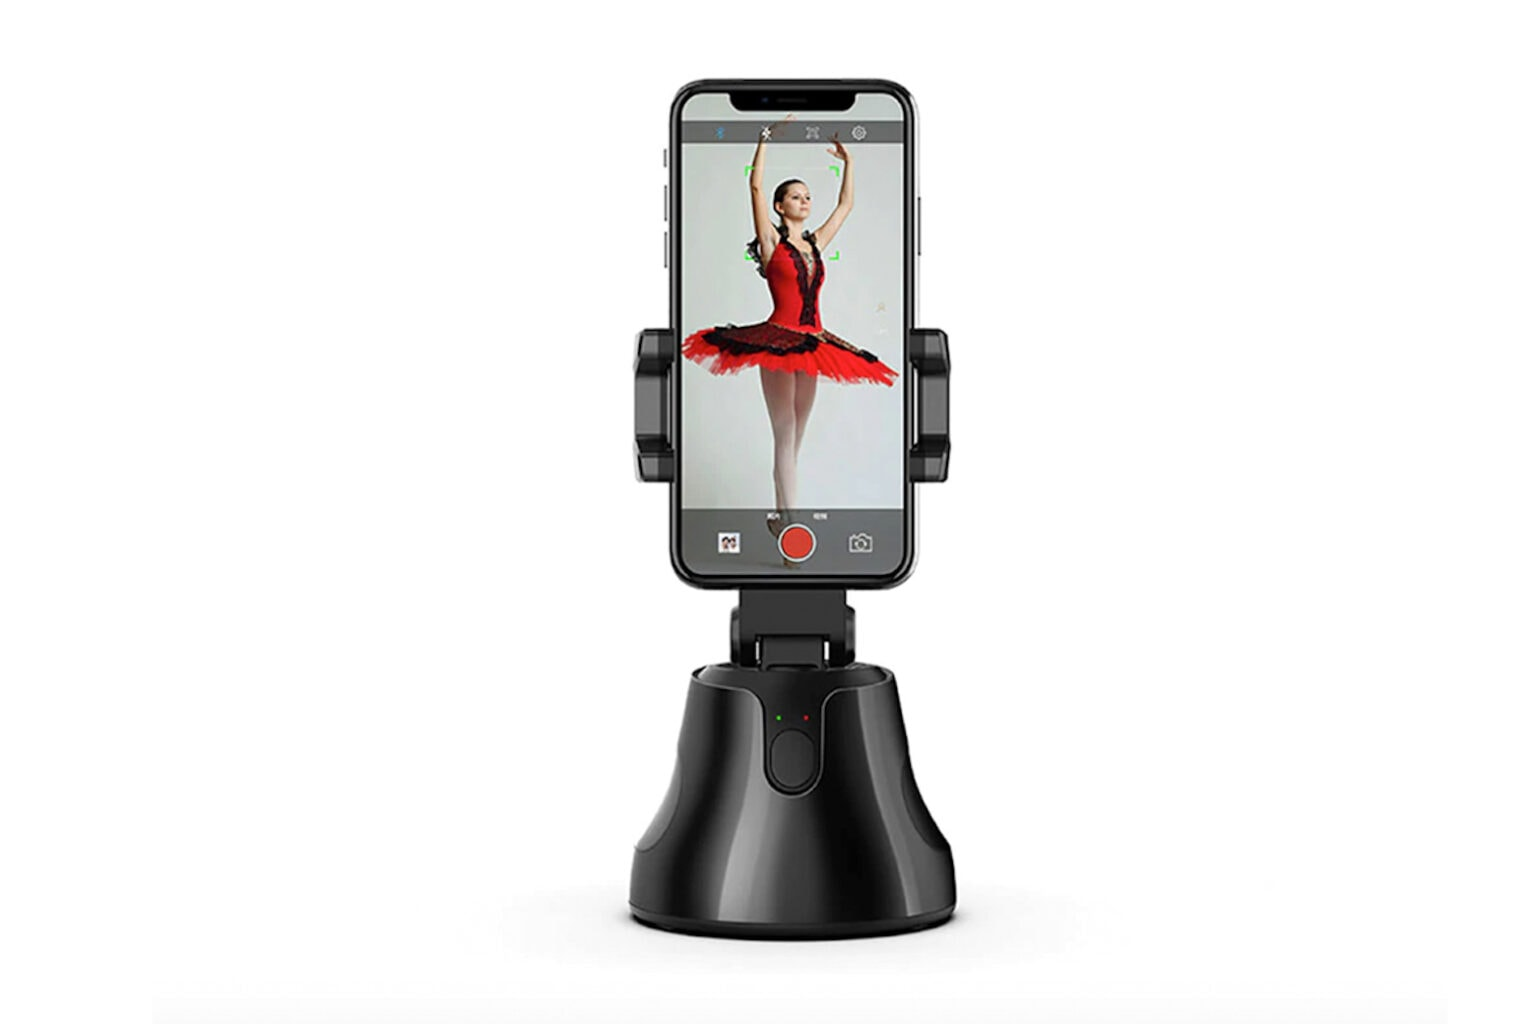 All in One AI 360 Smart Face Tracking Tripod